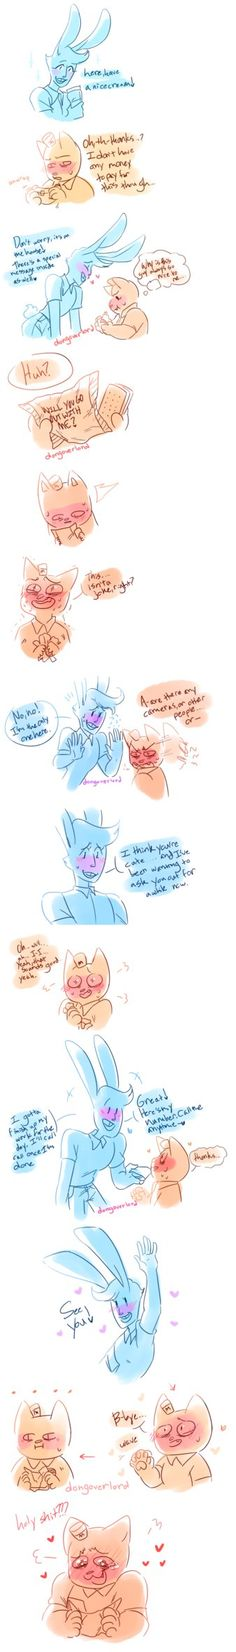 nicepants comic by dongoverlord>>> YES YES YES SO MUCH YES!!!